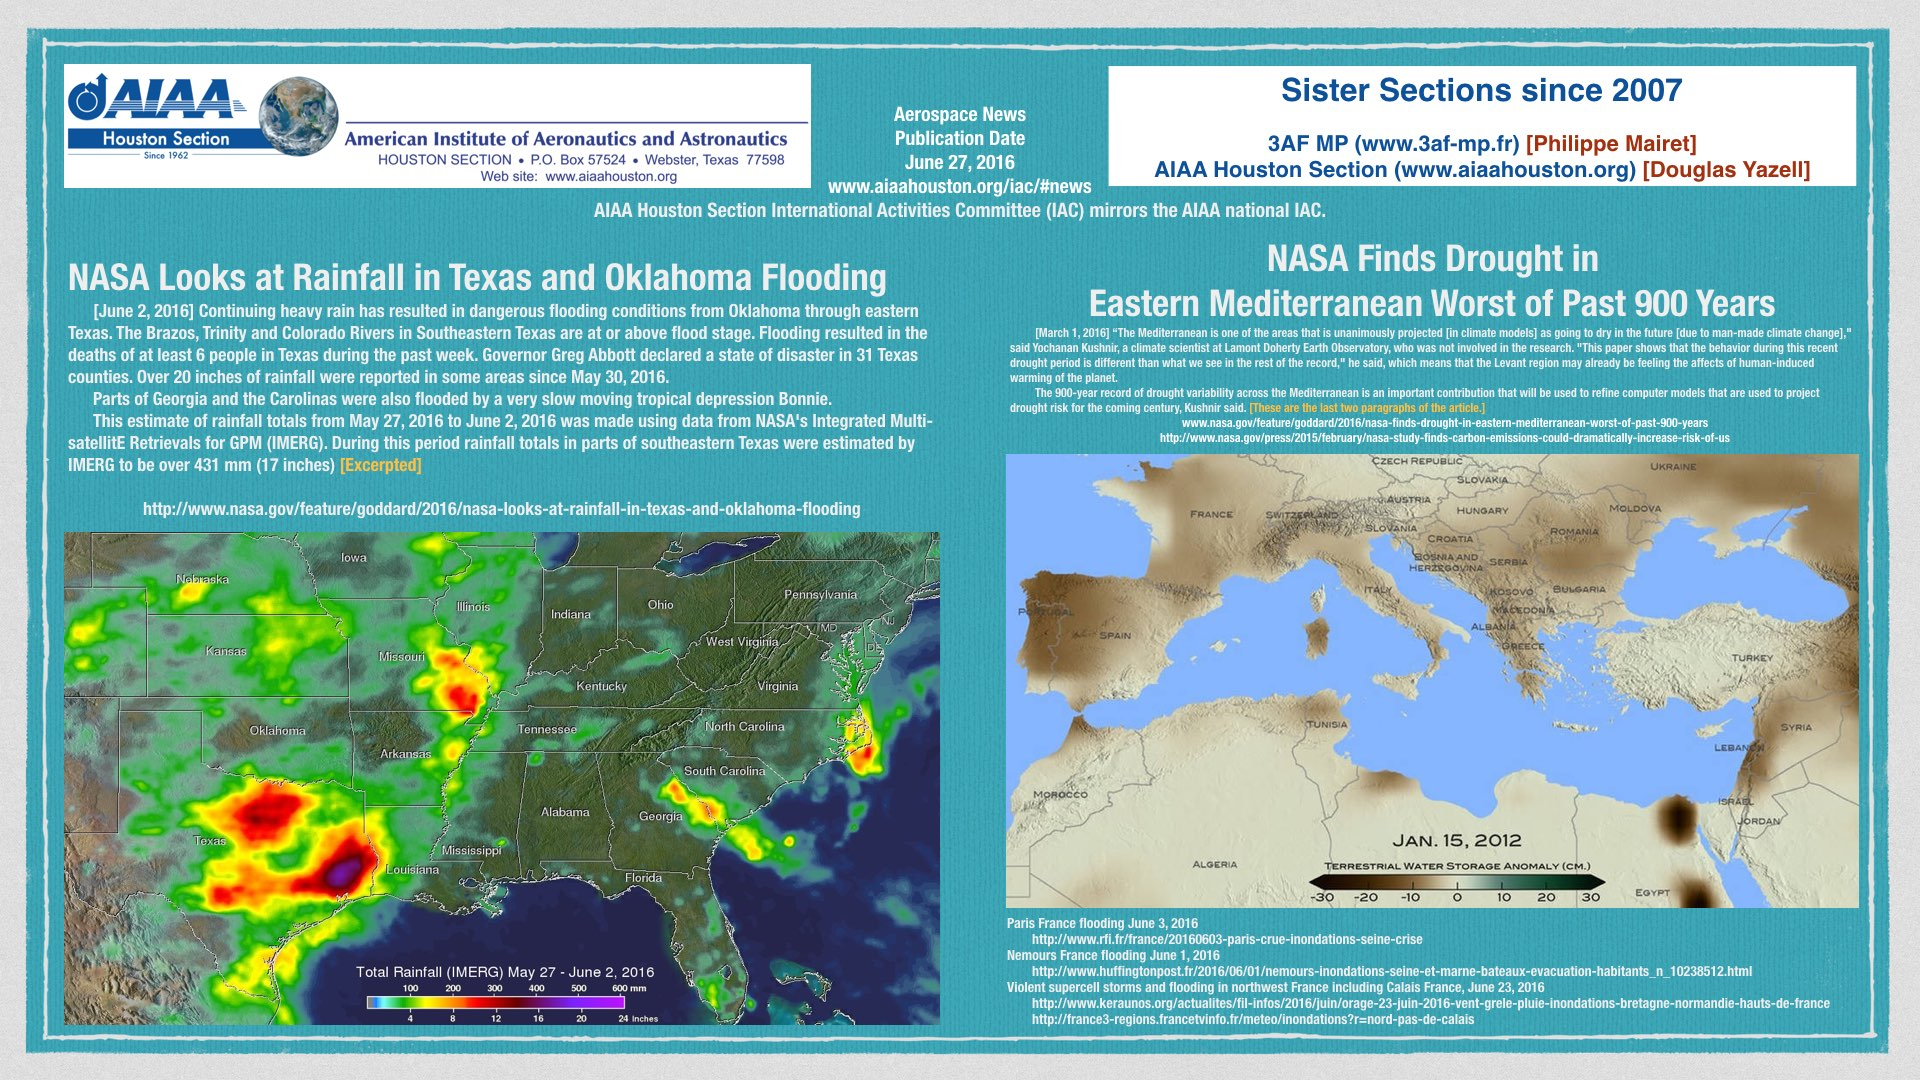 Above: Two NASA News Articles about Weather and Climate Change, including Human-Induced Climate Change. (Click to zoom.)